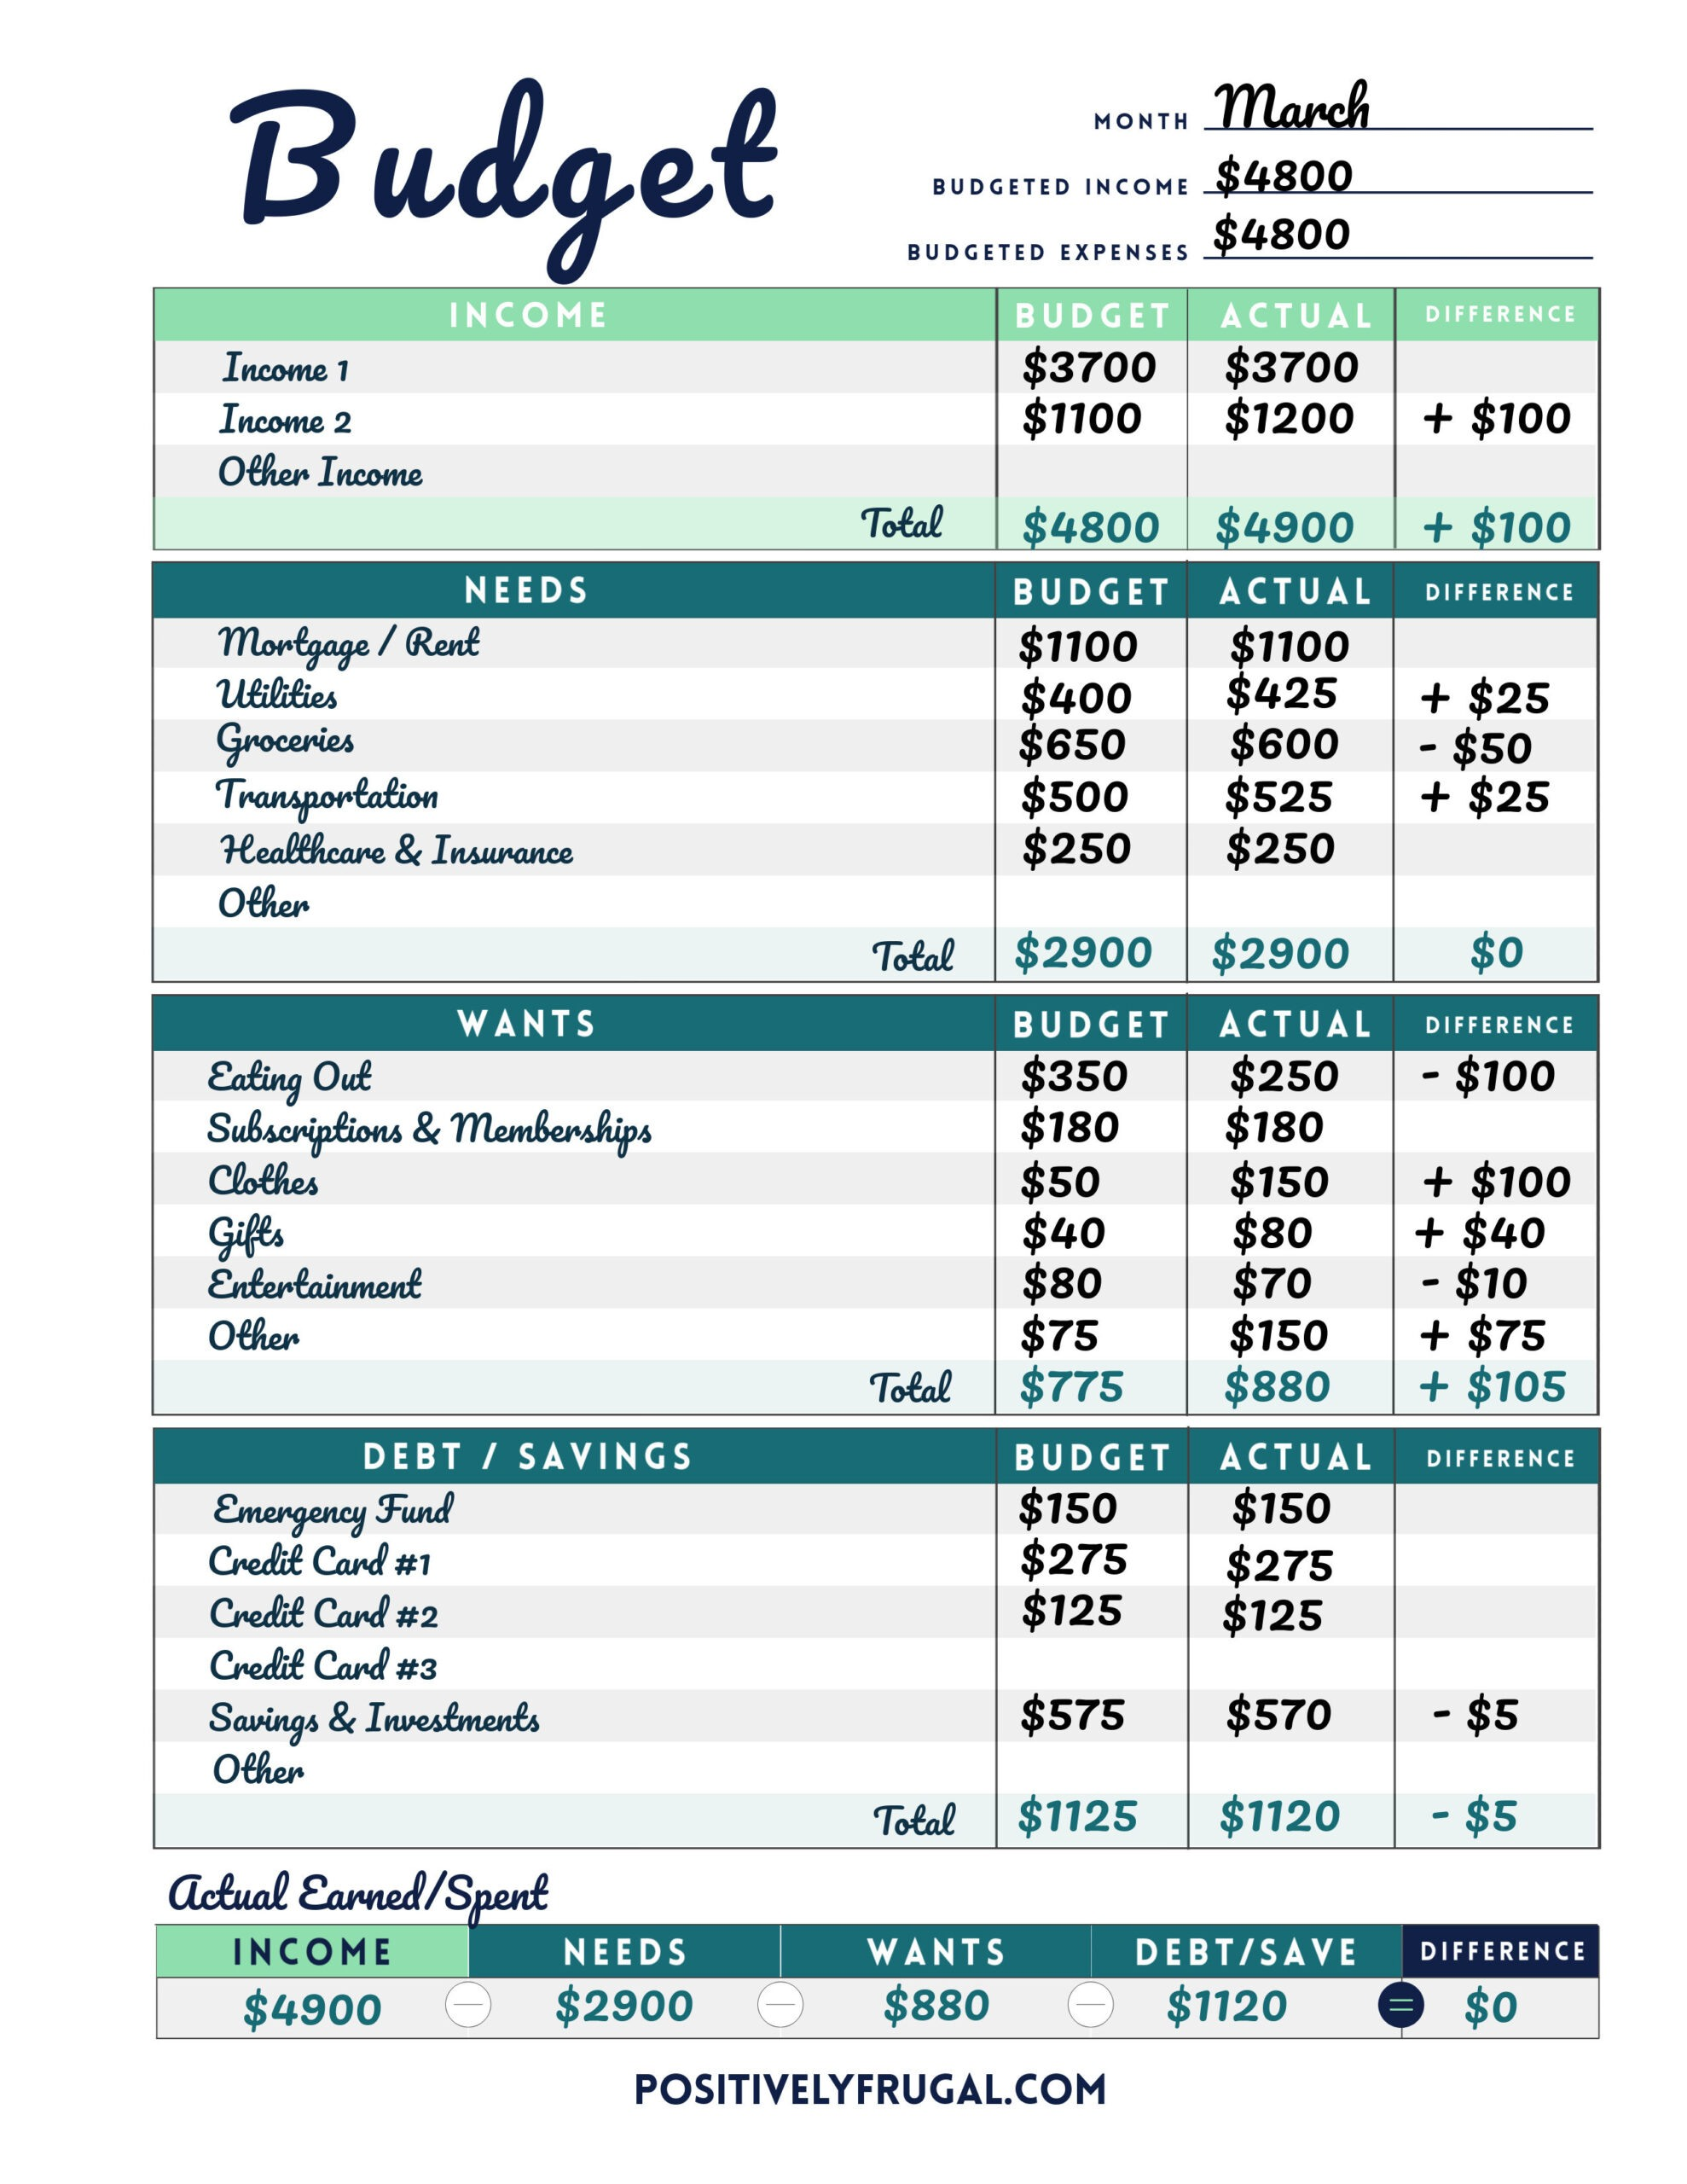 Budget Worksheet Example by PositivelyFrugal.com